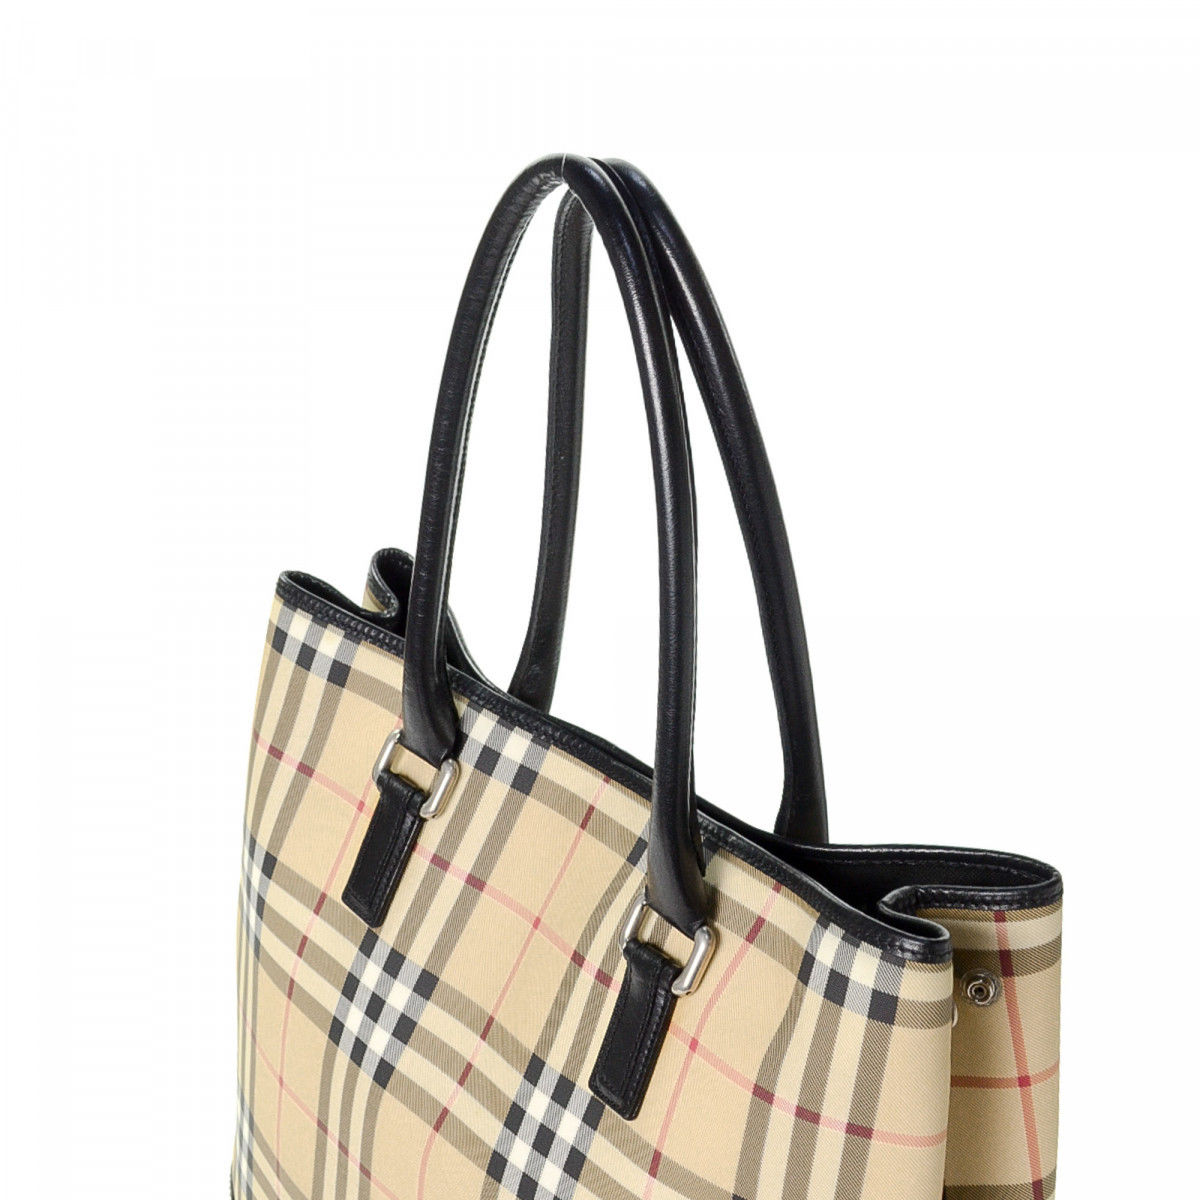 Burberry Haymarket Check Tote. The authenticity of this vintage Burberry  tote is guaranteed by LXRandCo. This exquisite work bag was crafted ... f2a6e2404c